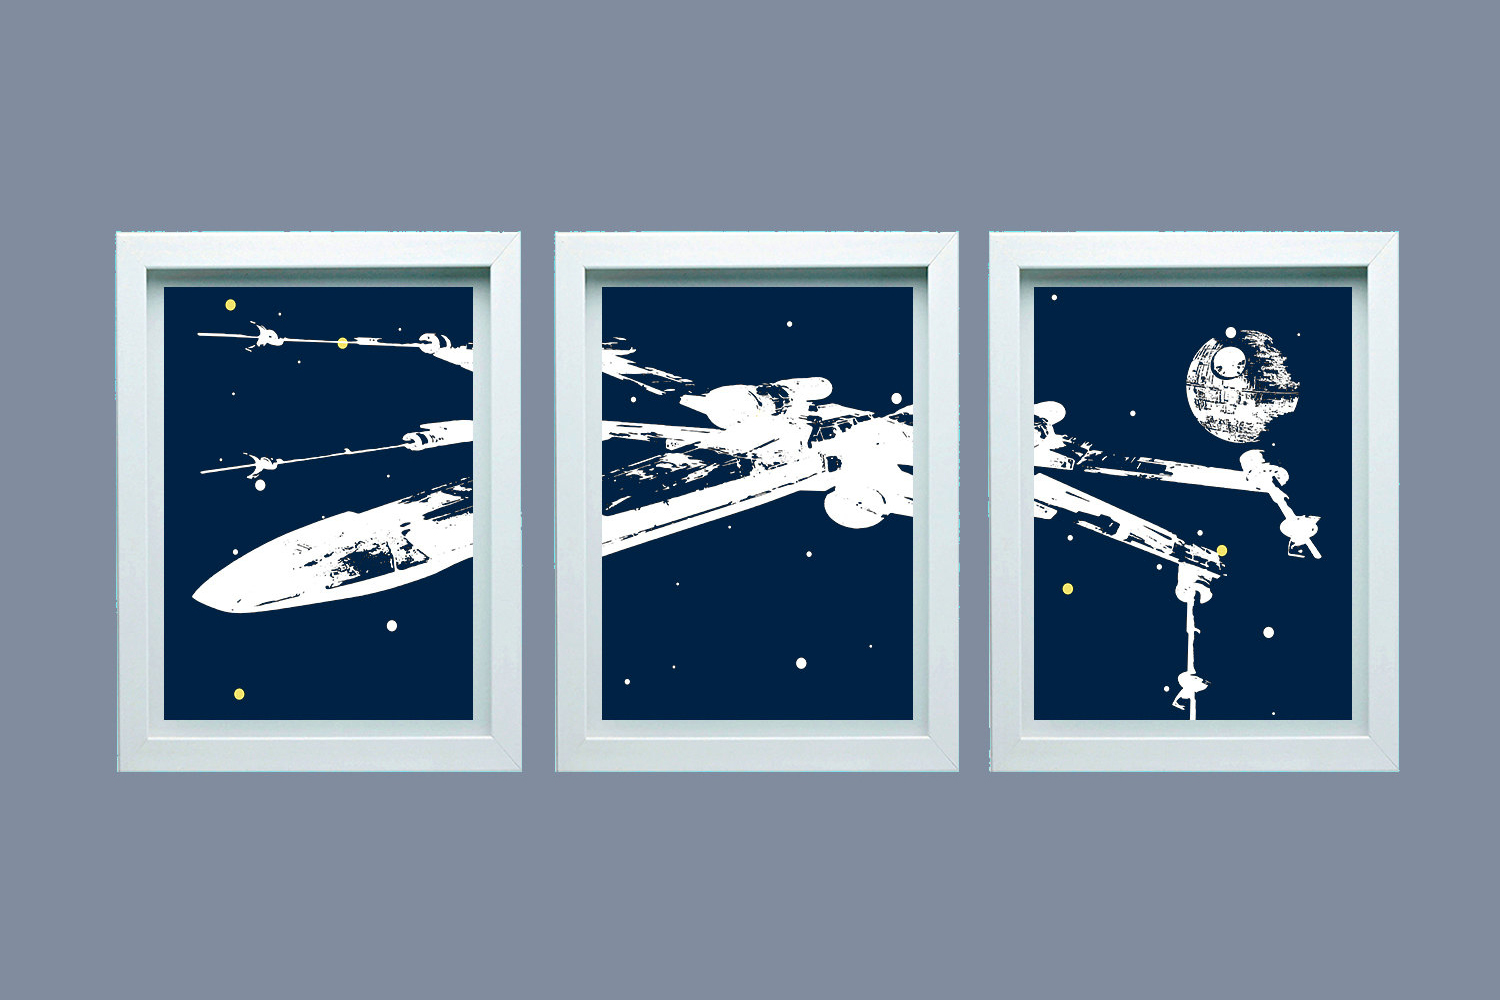 Star Wall Decor Ideas: The Most Amazing Star Wars Gear And Decor For Your Home